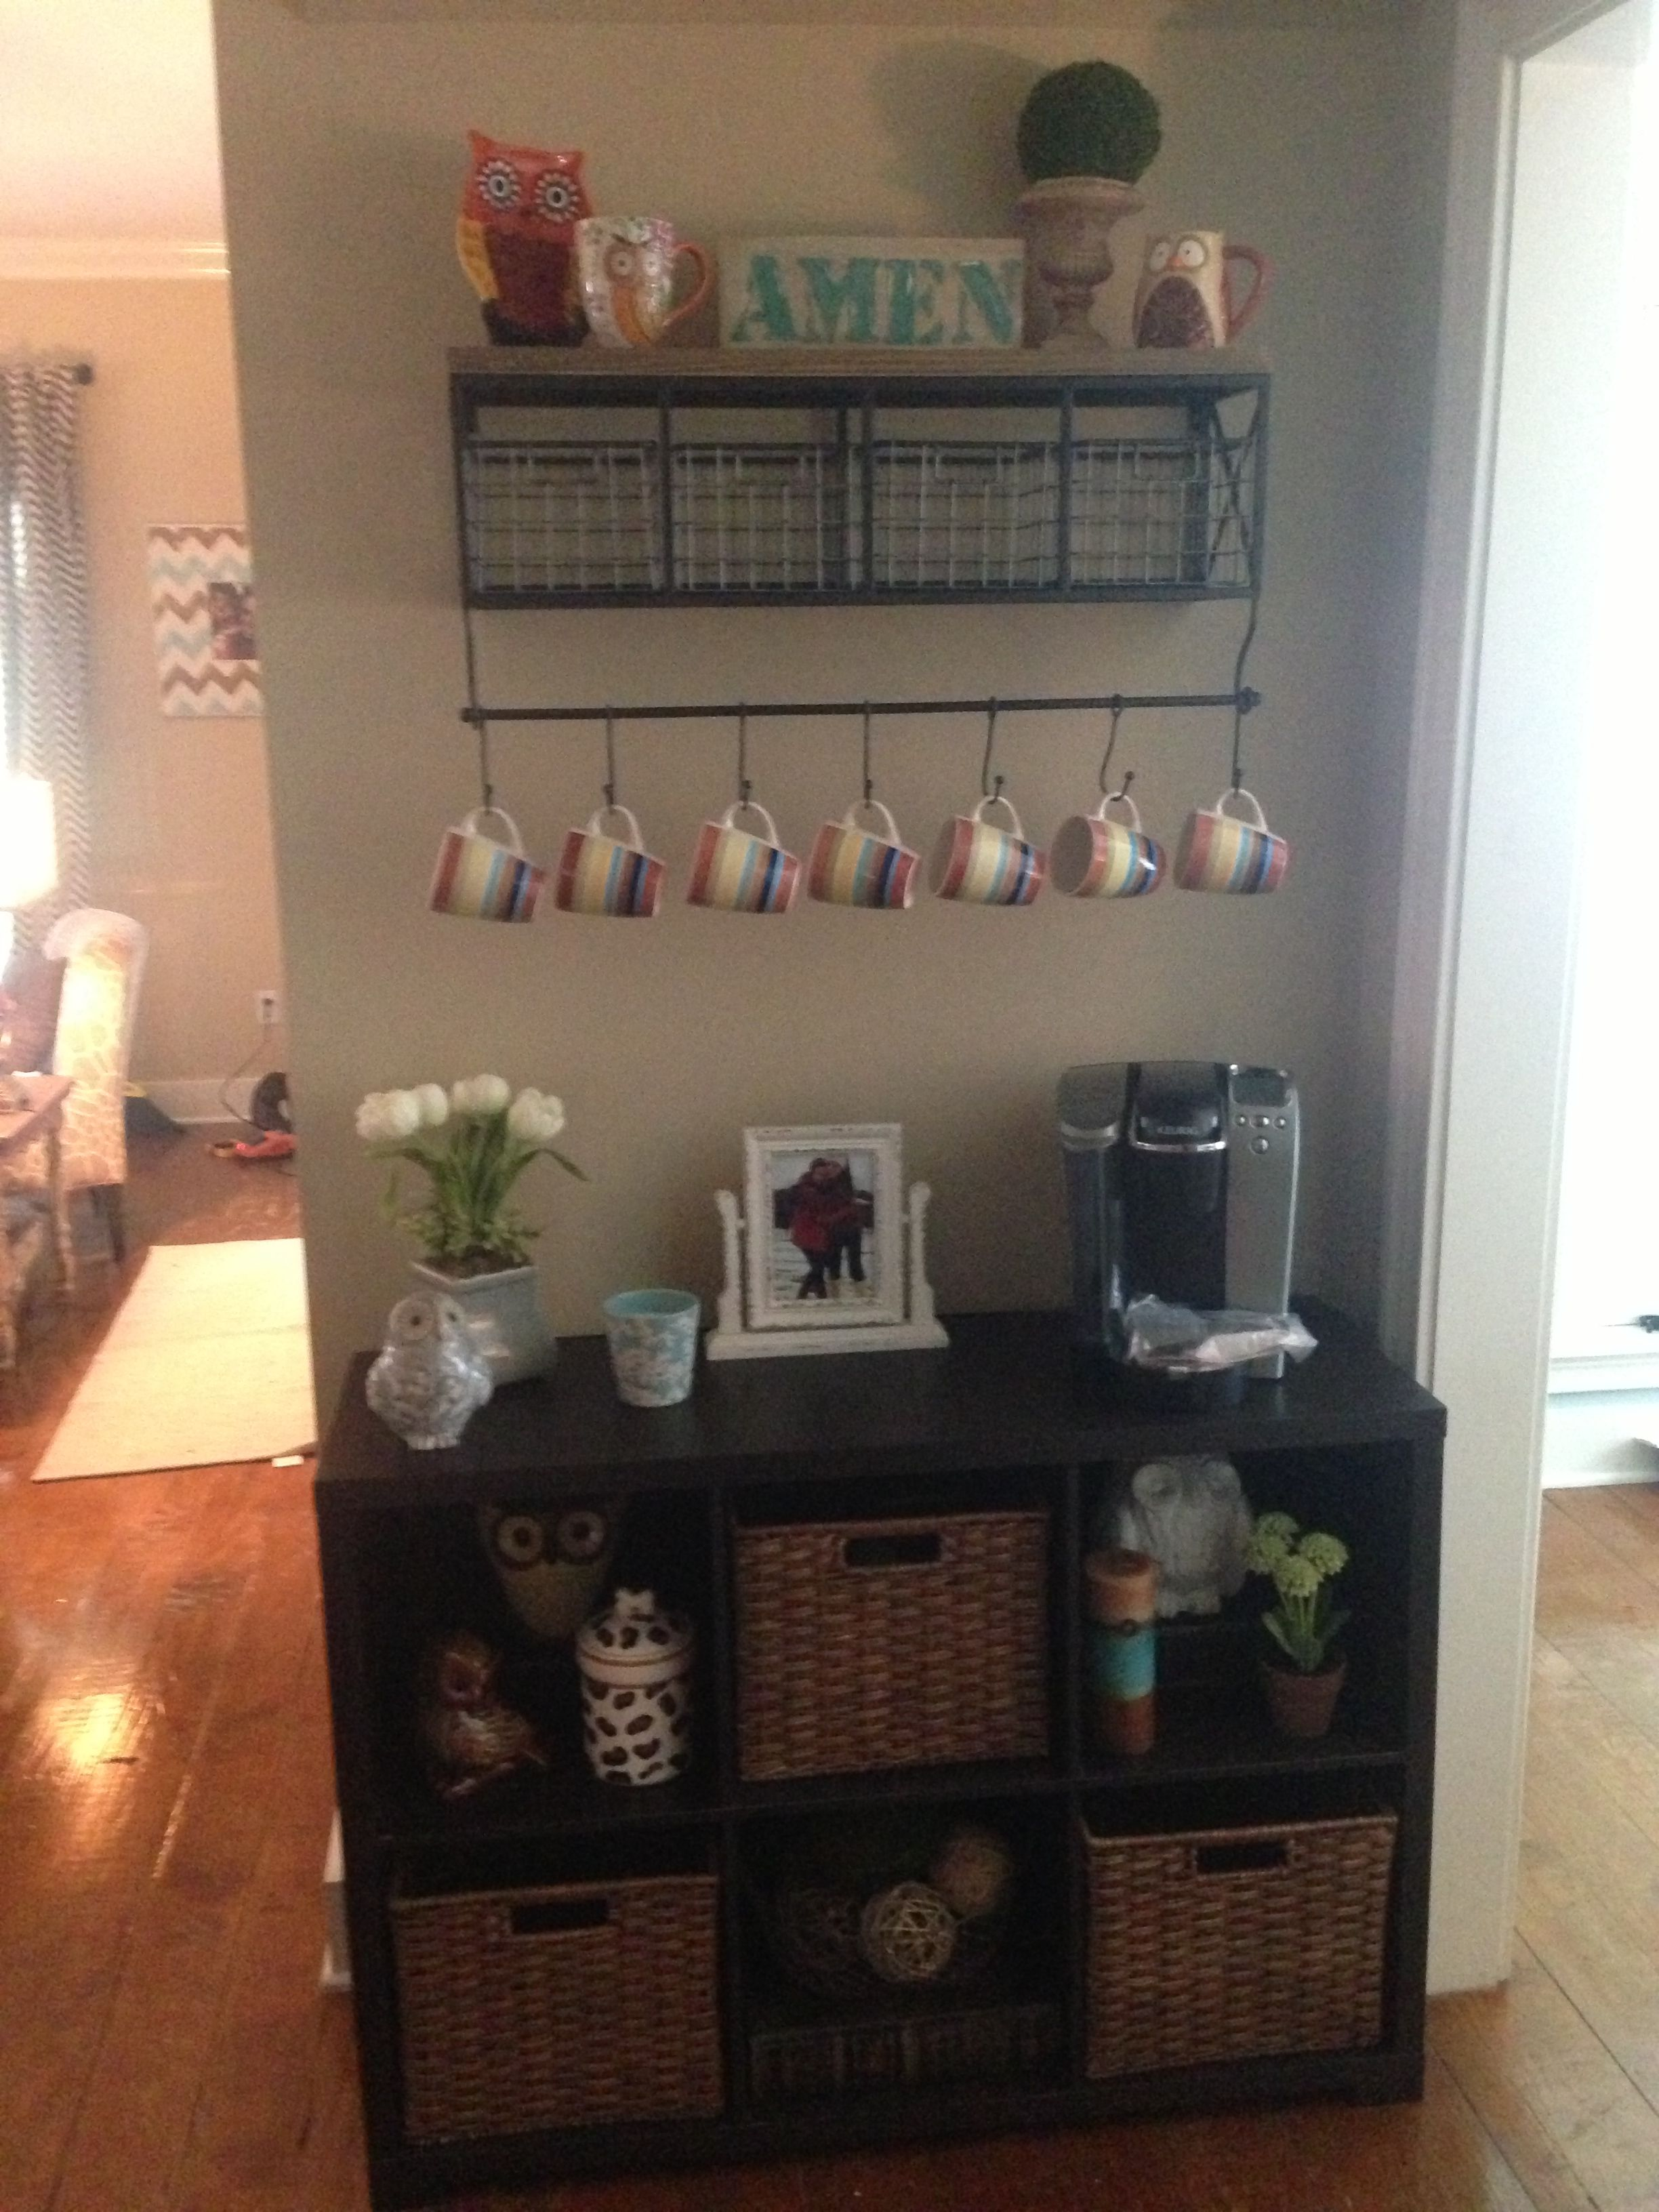 Another Cute Idea For A Coffee Bar In Your House